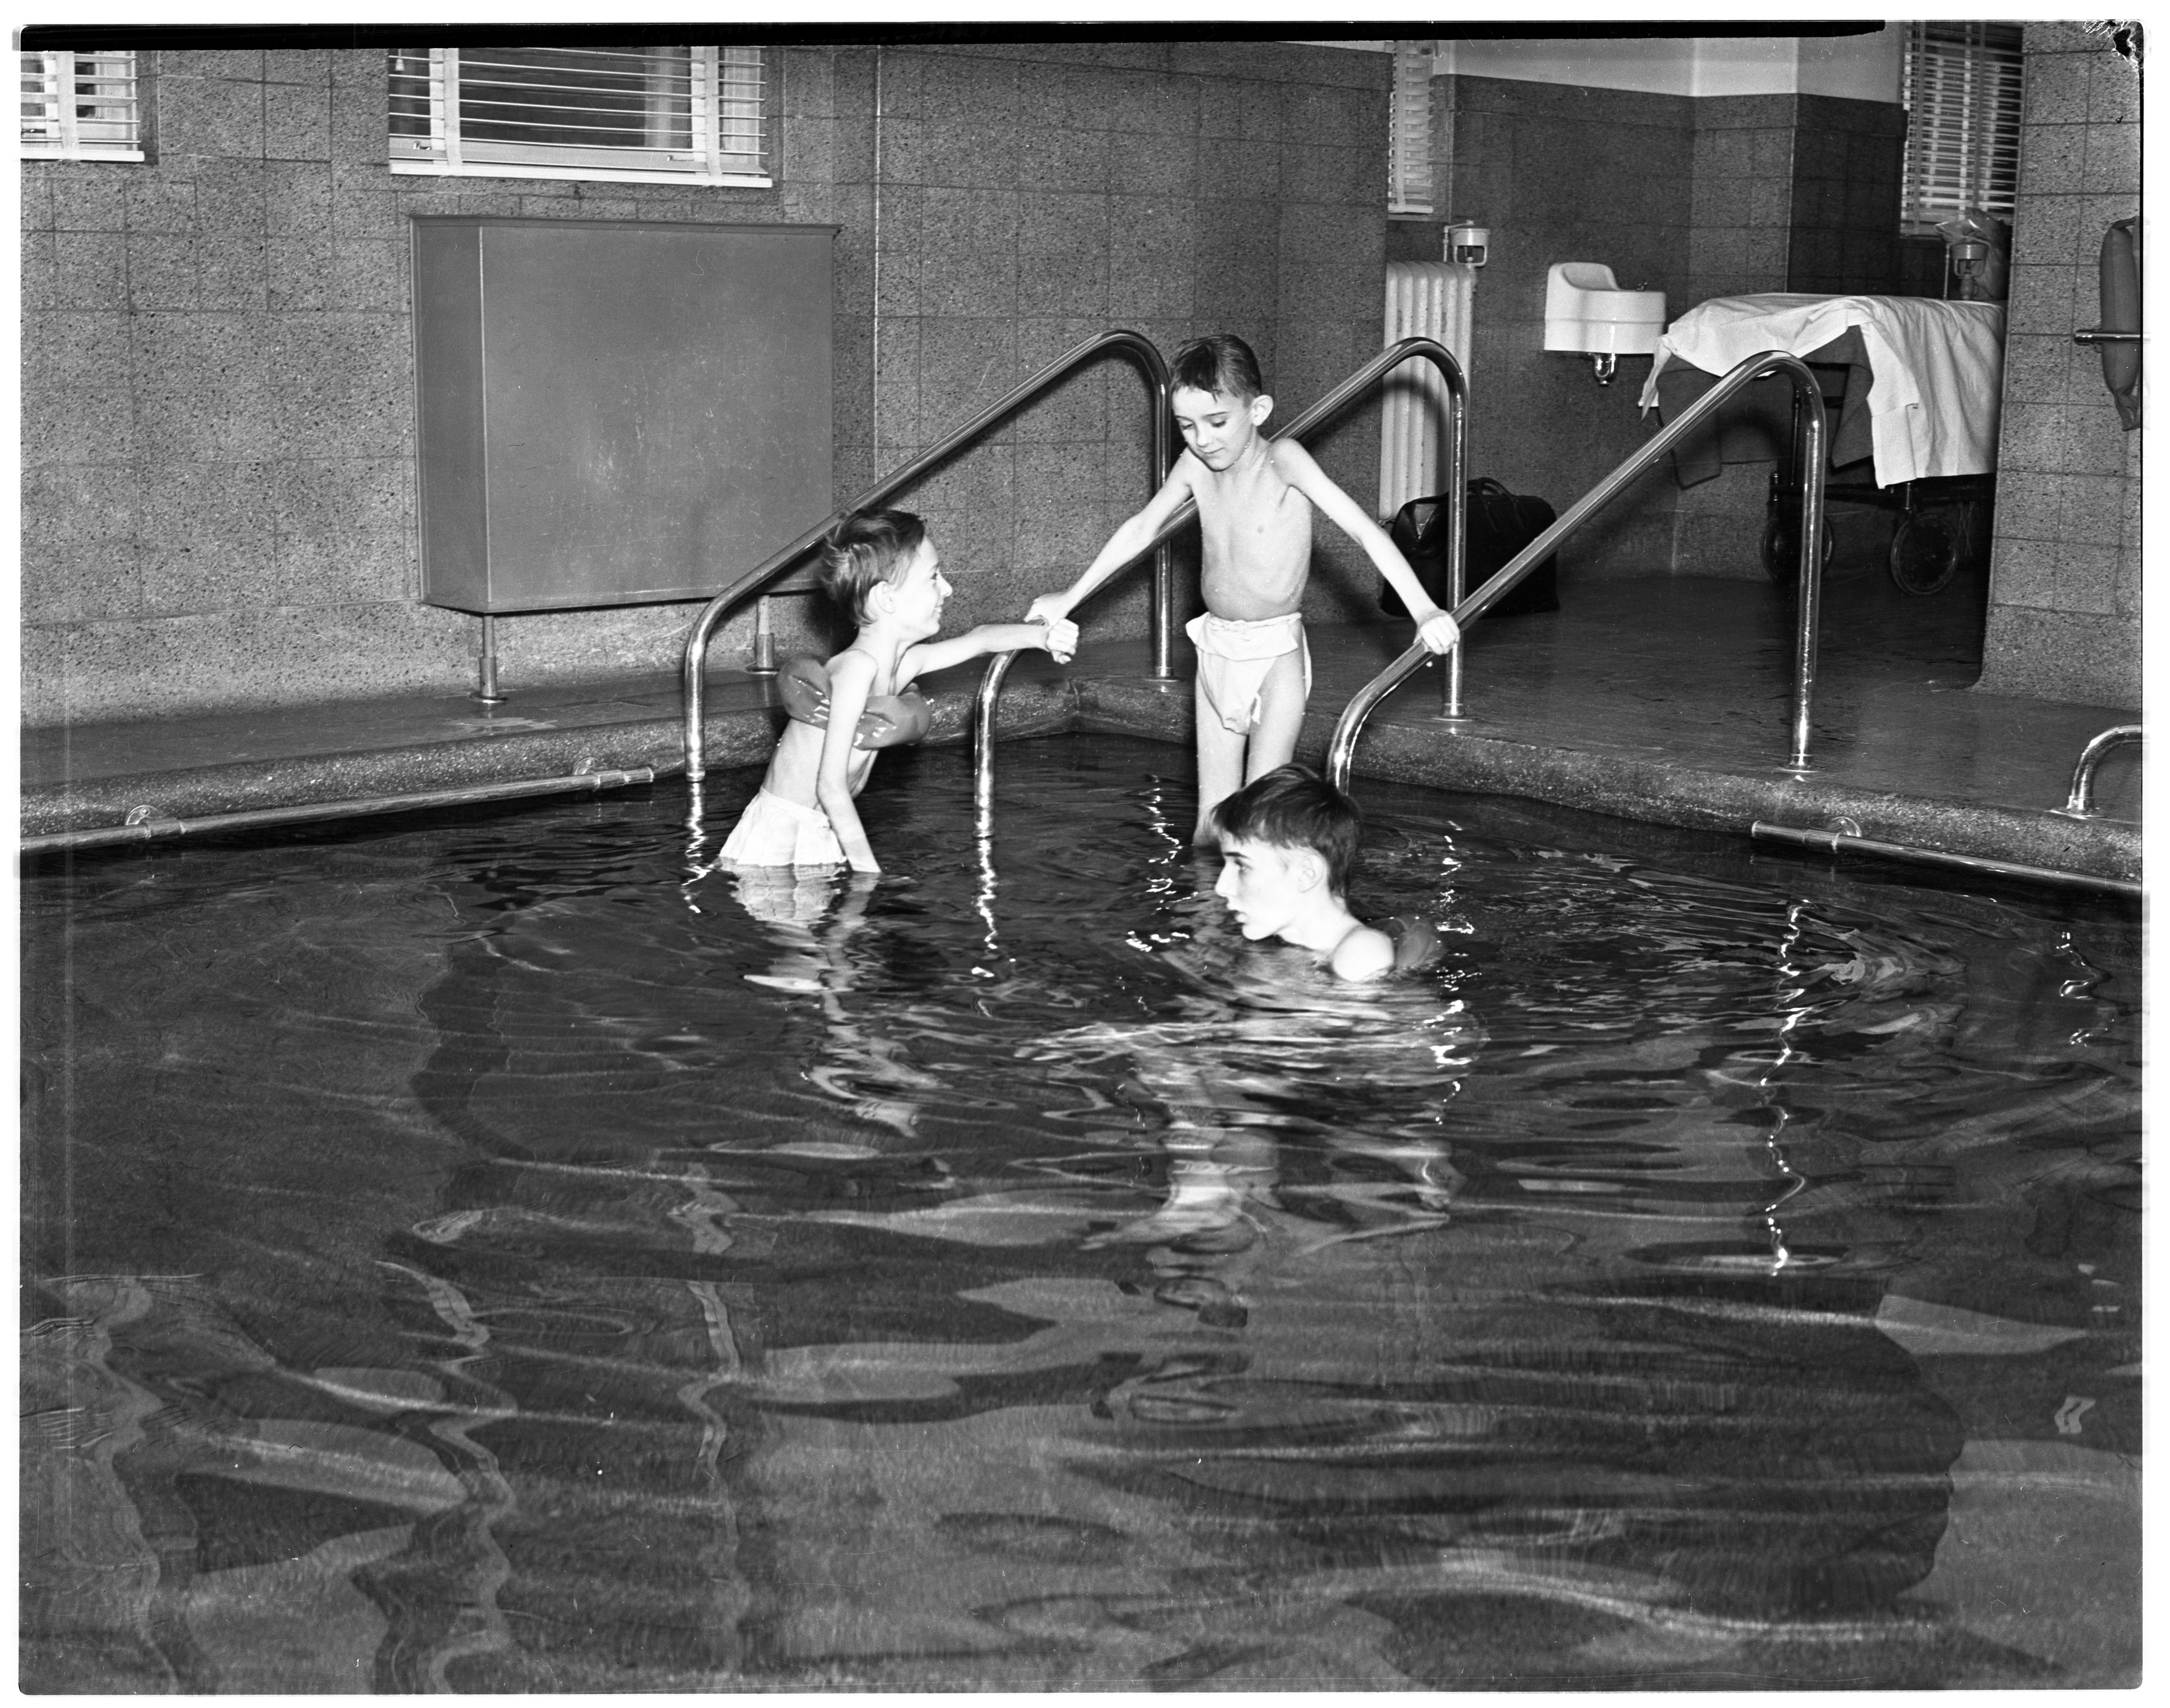 Polio Patients Exercise In University Hospital Physical Therapy Pool, January 1938 image